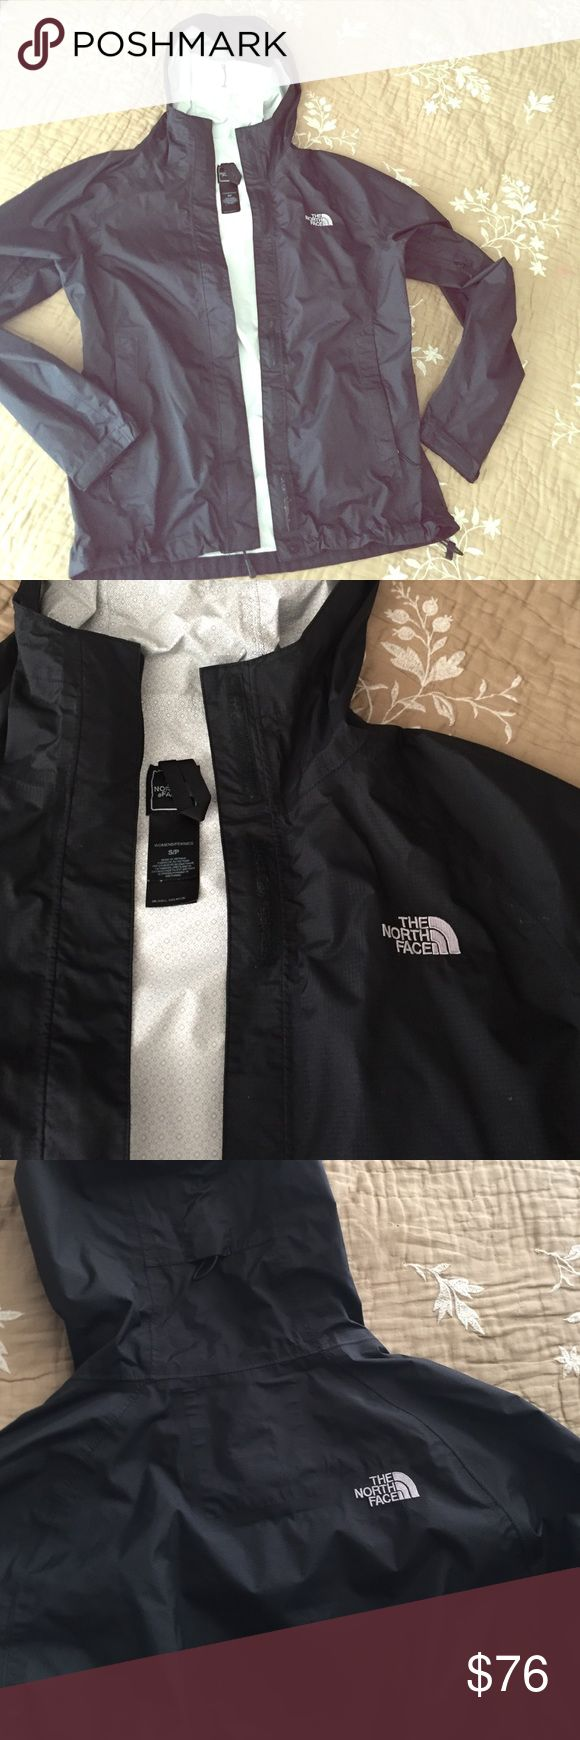 North face jacket It's very cute, good condition has lots of pockets North Face Jackets & Coats